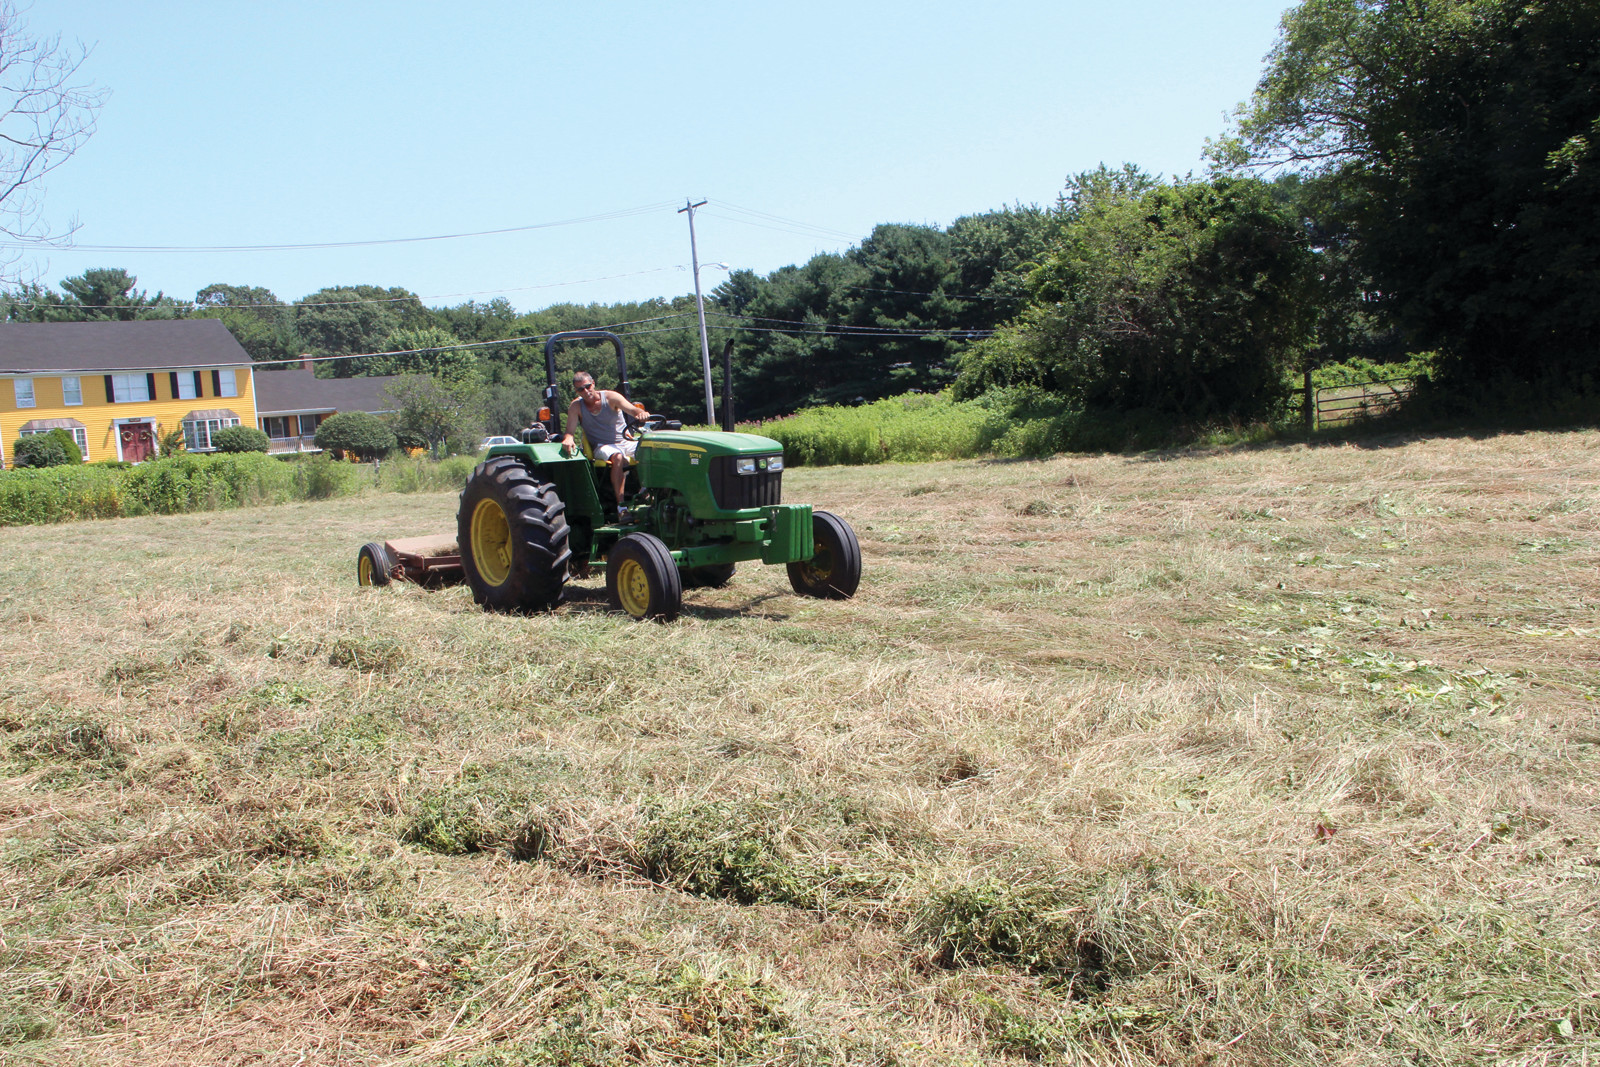 Paul Sullivan crimps hay at Morris Farm in Warwick. Normally, hay production is finished by the last week of June. An extra-rainy spring pushed back that schedule.